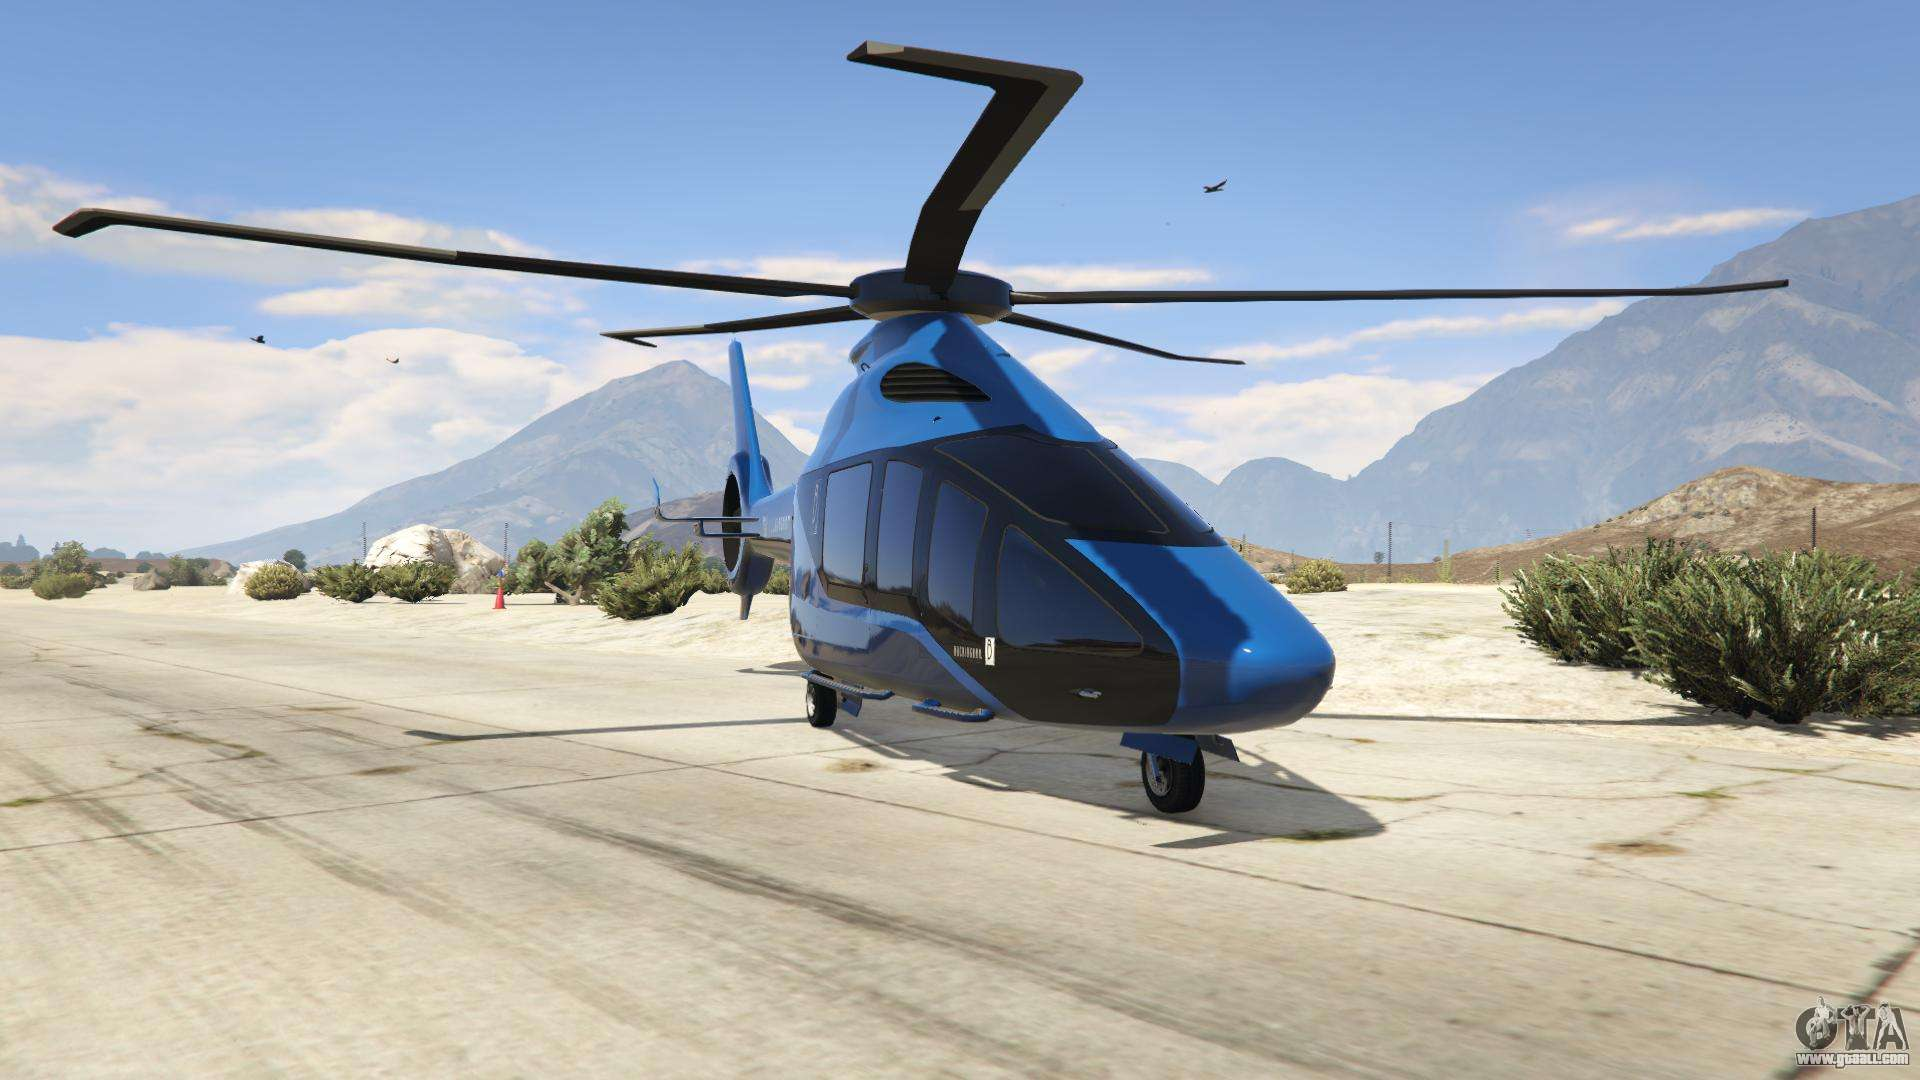 liberty city helicopter cheat with 27988 Buckingham Volatus on Vice City Helicopter Cheat Code as well Game Codes together with New York Flight Simulator Hack Cheats as well 22 1 0 52 as well Gta 5 Cheats Xbox 360 Jetpack.